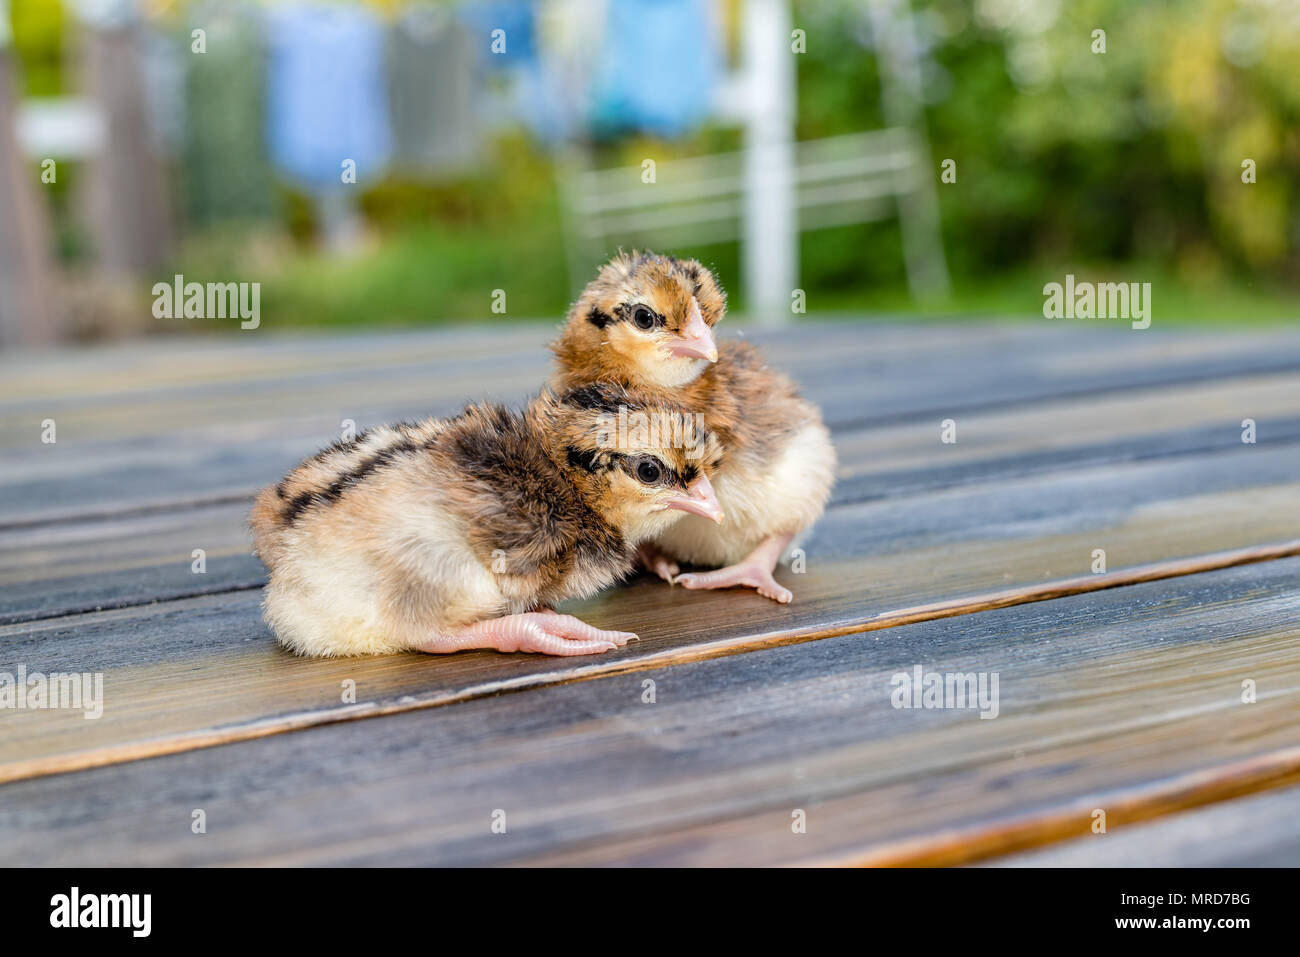 Two small creme legbar chickens standing on a table in a swedish garden - Stock Image